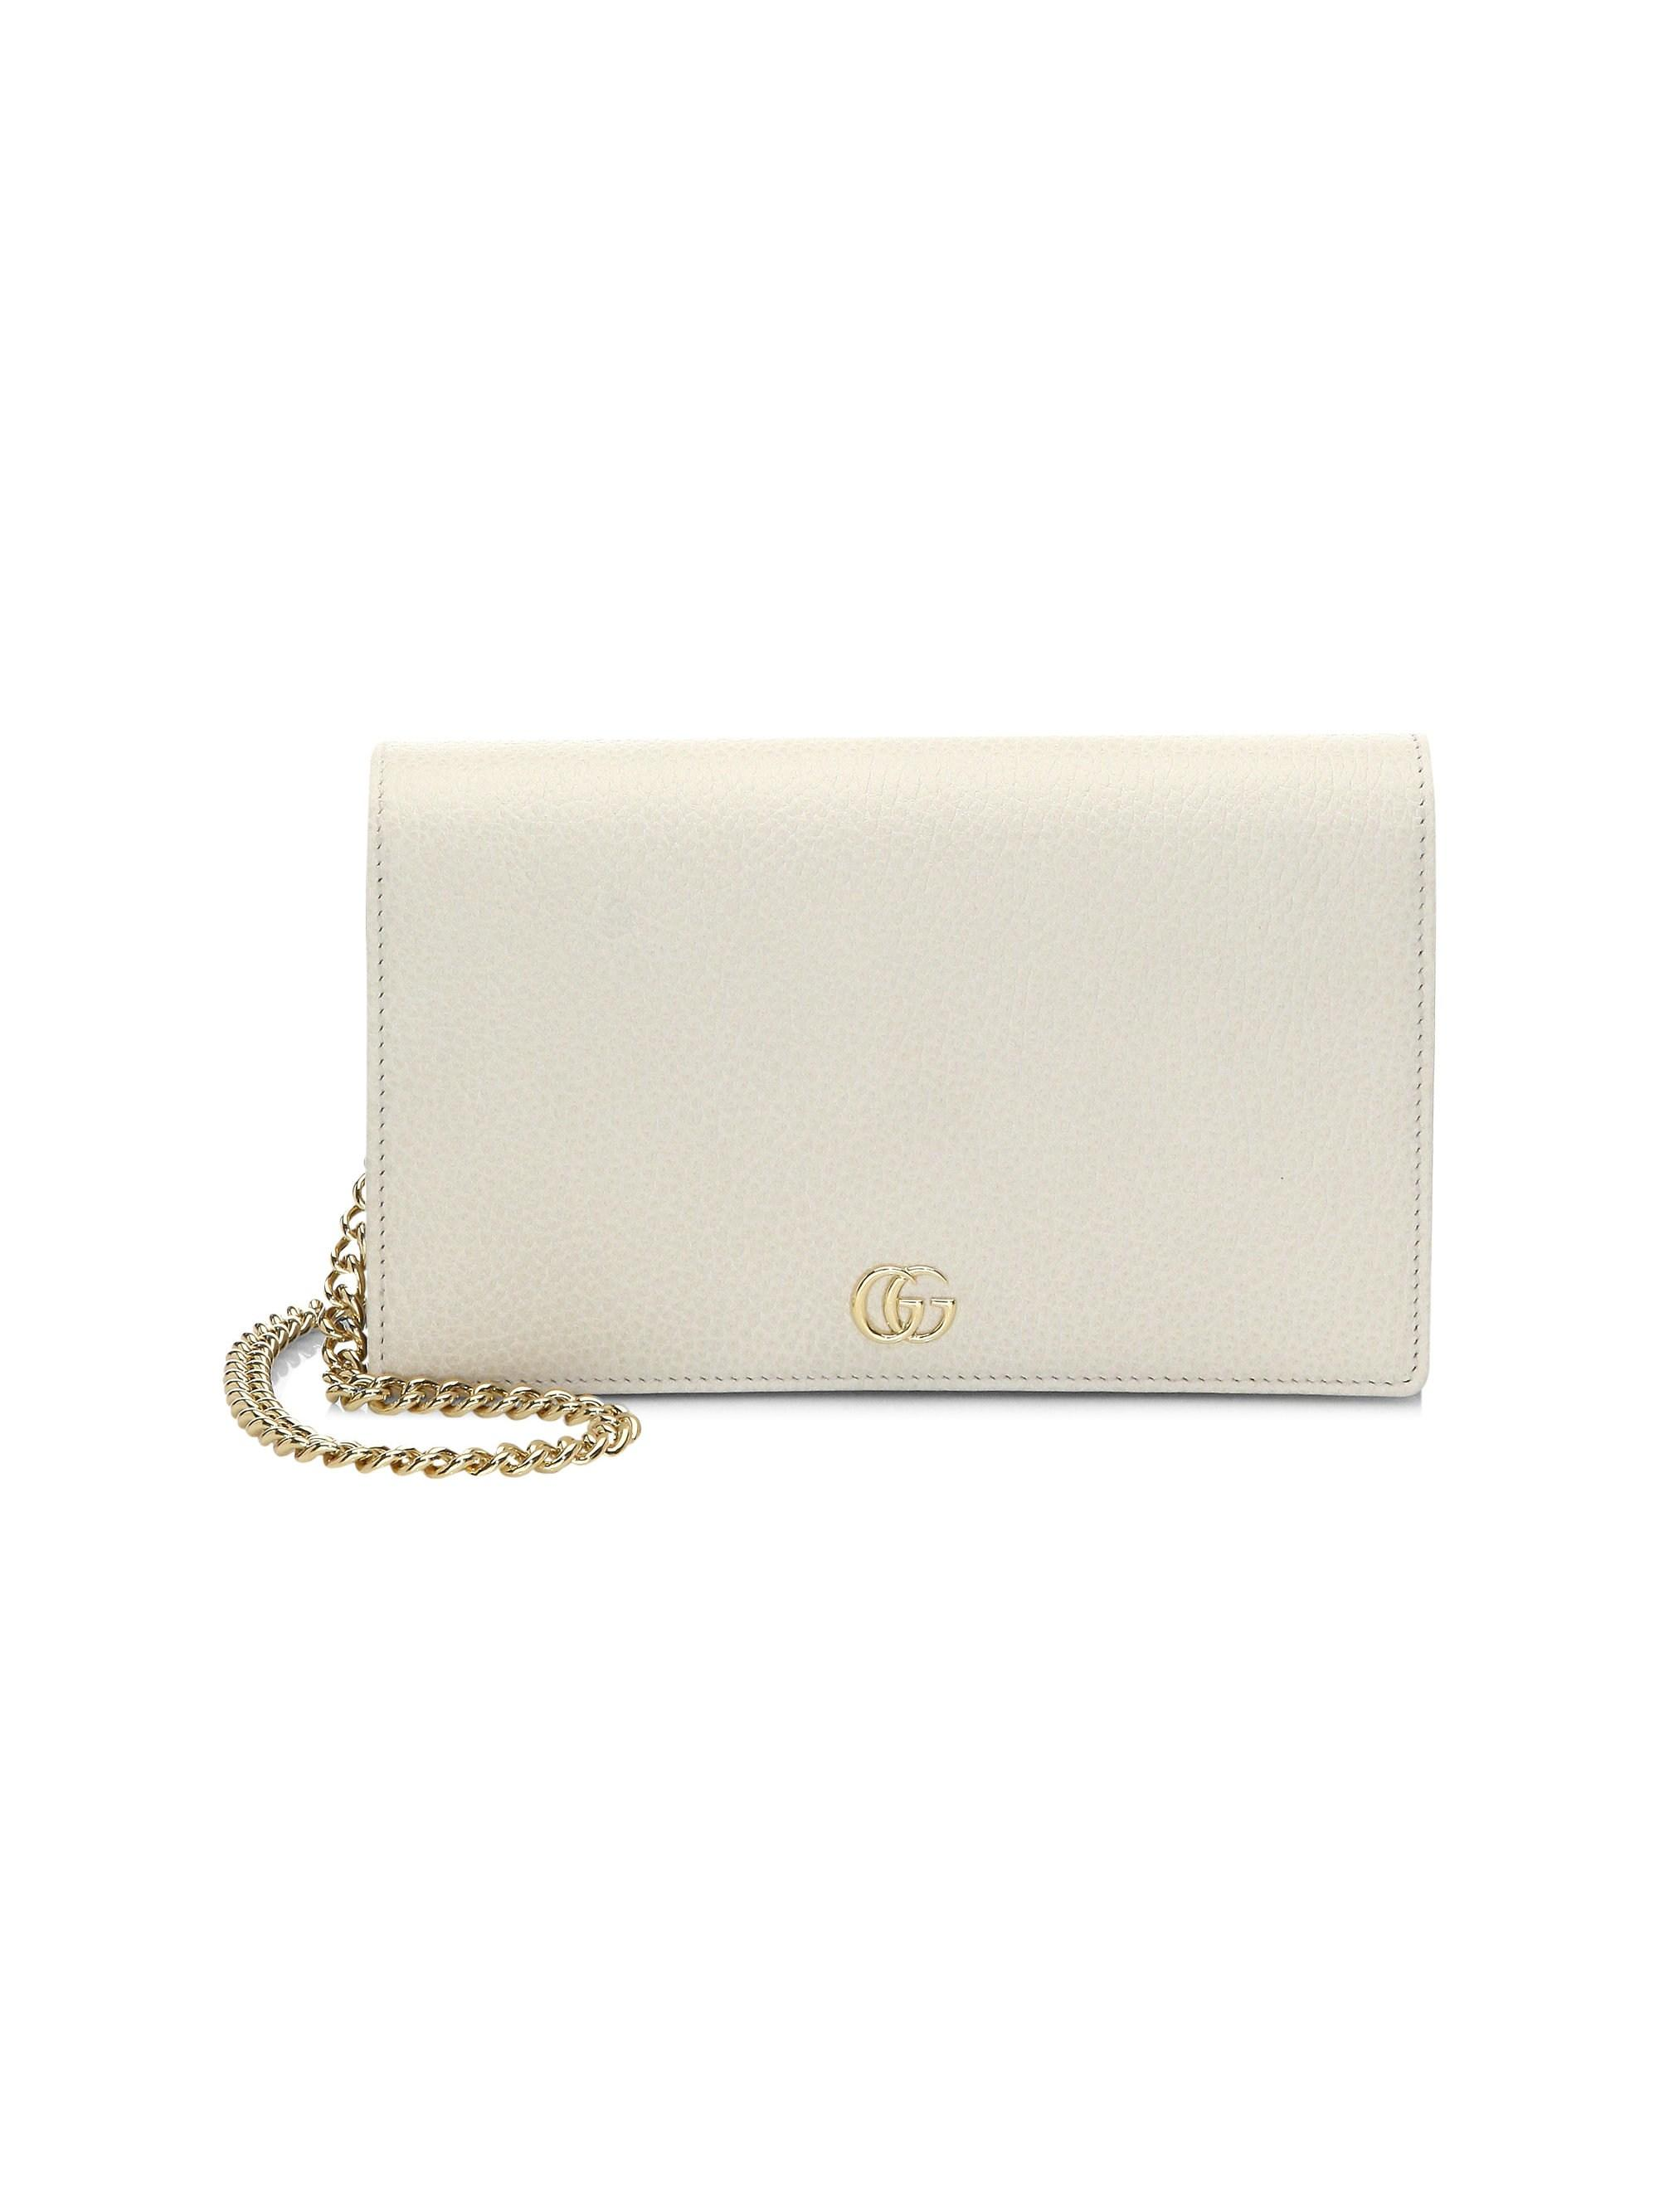 28275586f7bc6e Gallery. Previously sold at: Saks Fifth Avenue · Women's Wallet On Chain